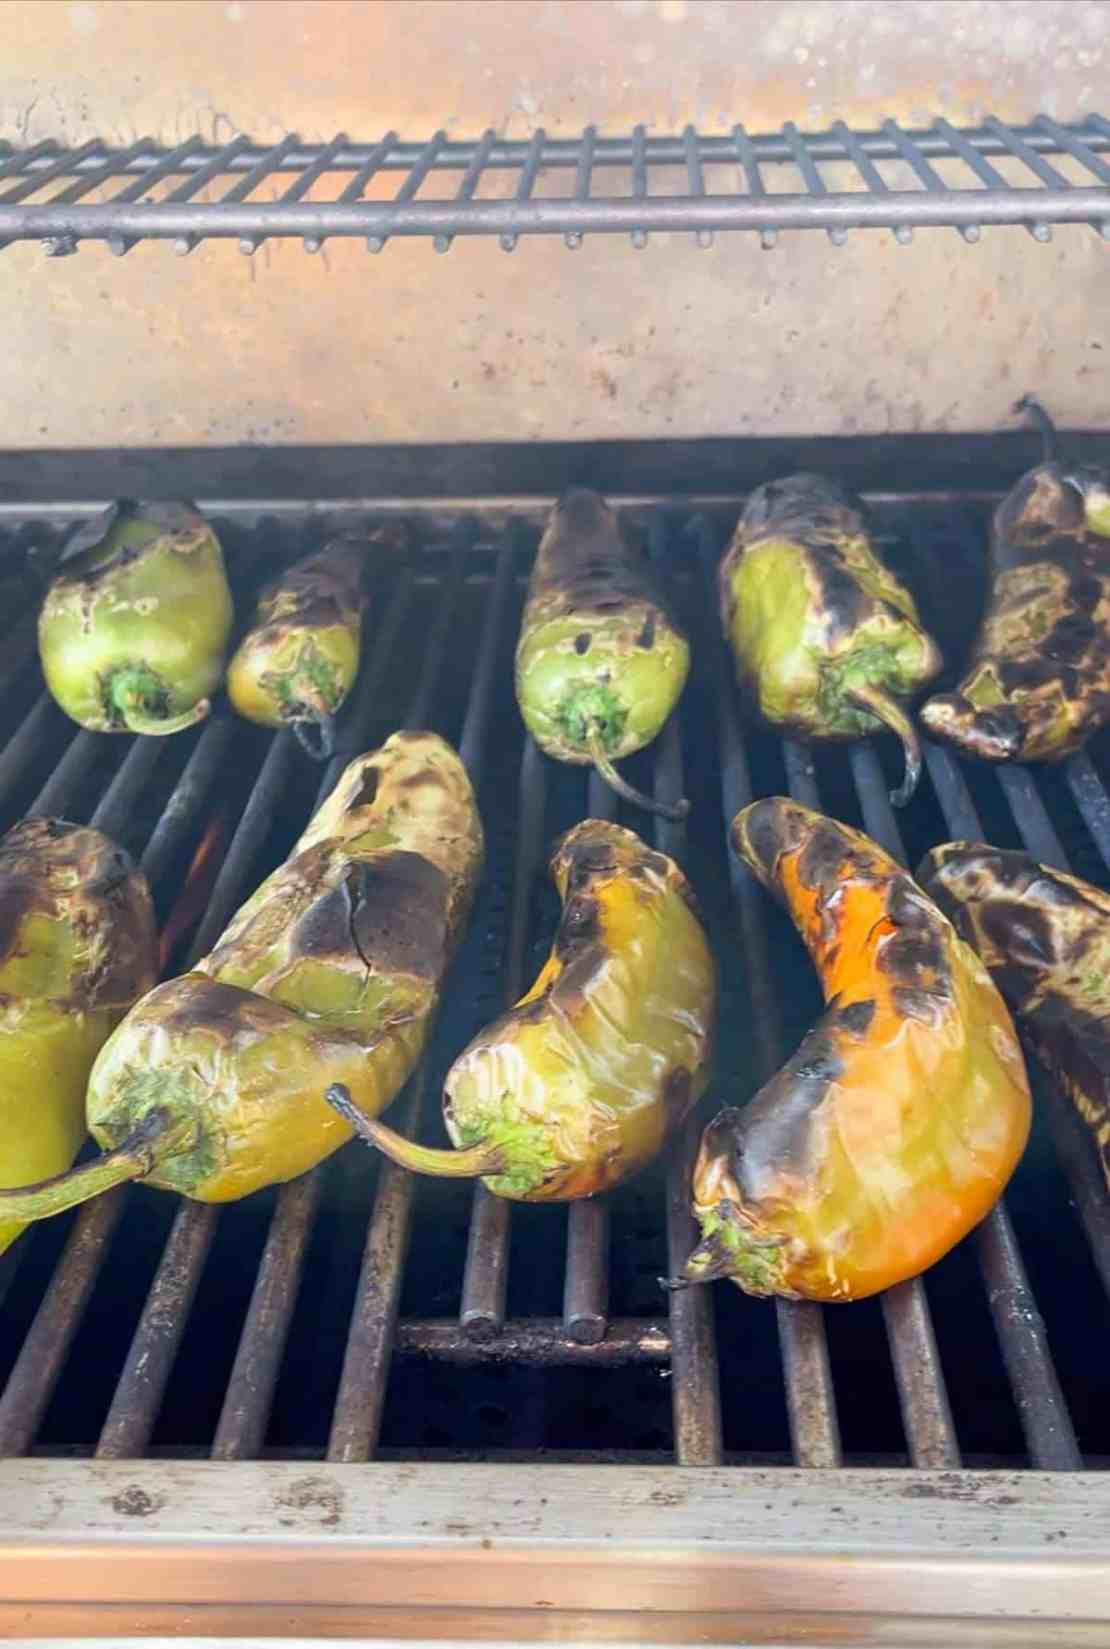 Red and green peppers being roasted on an outside grill